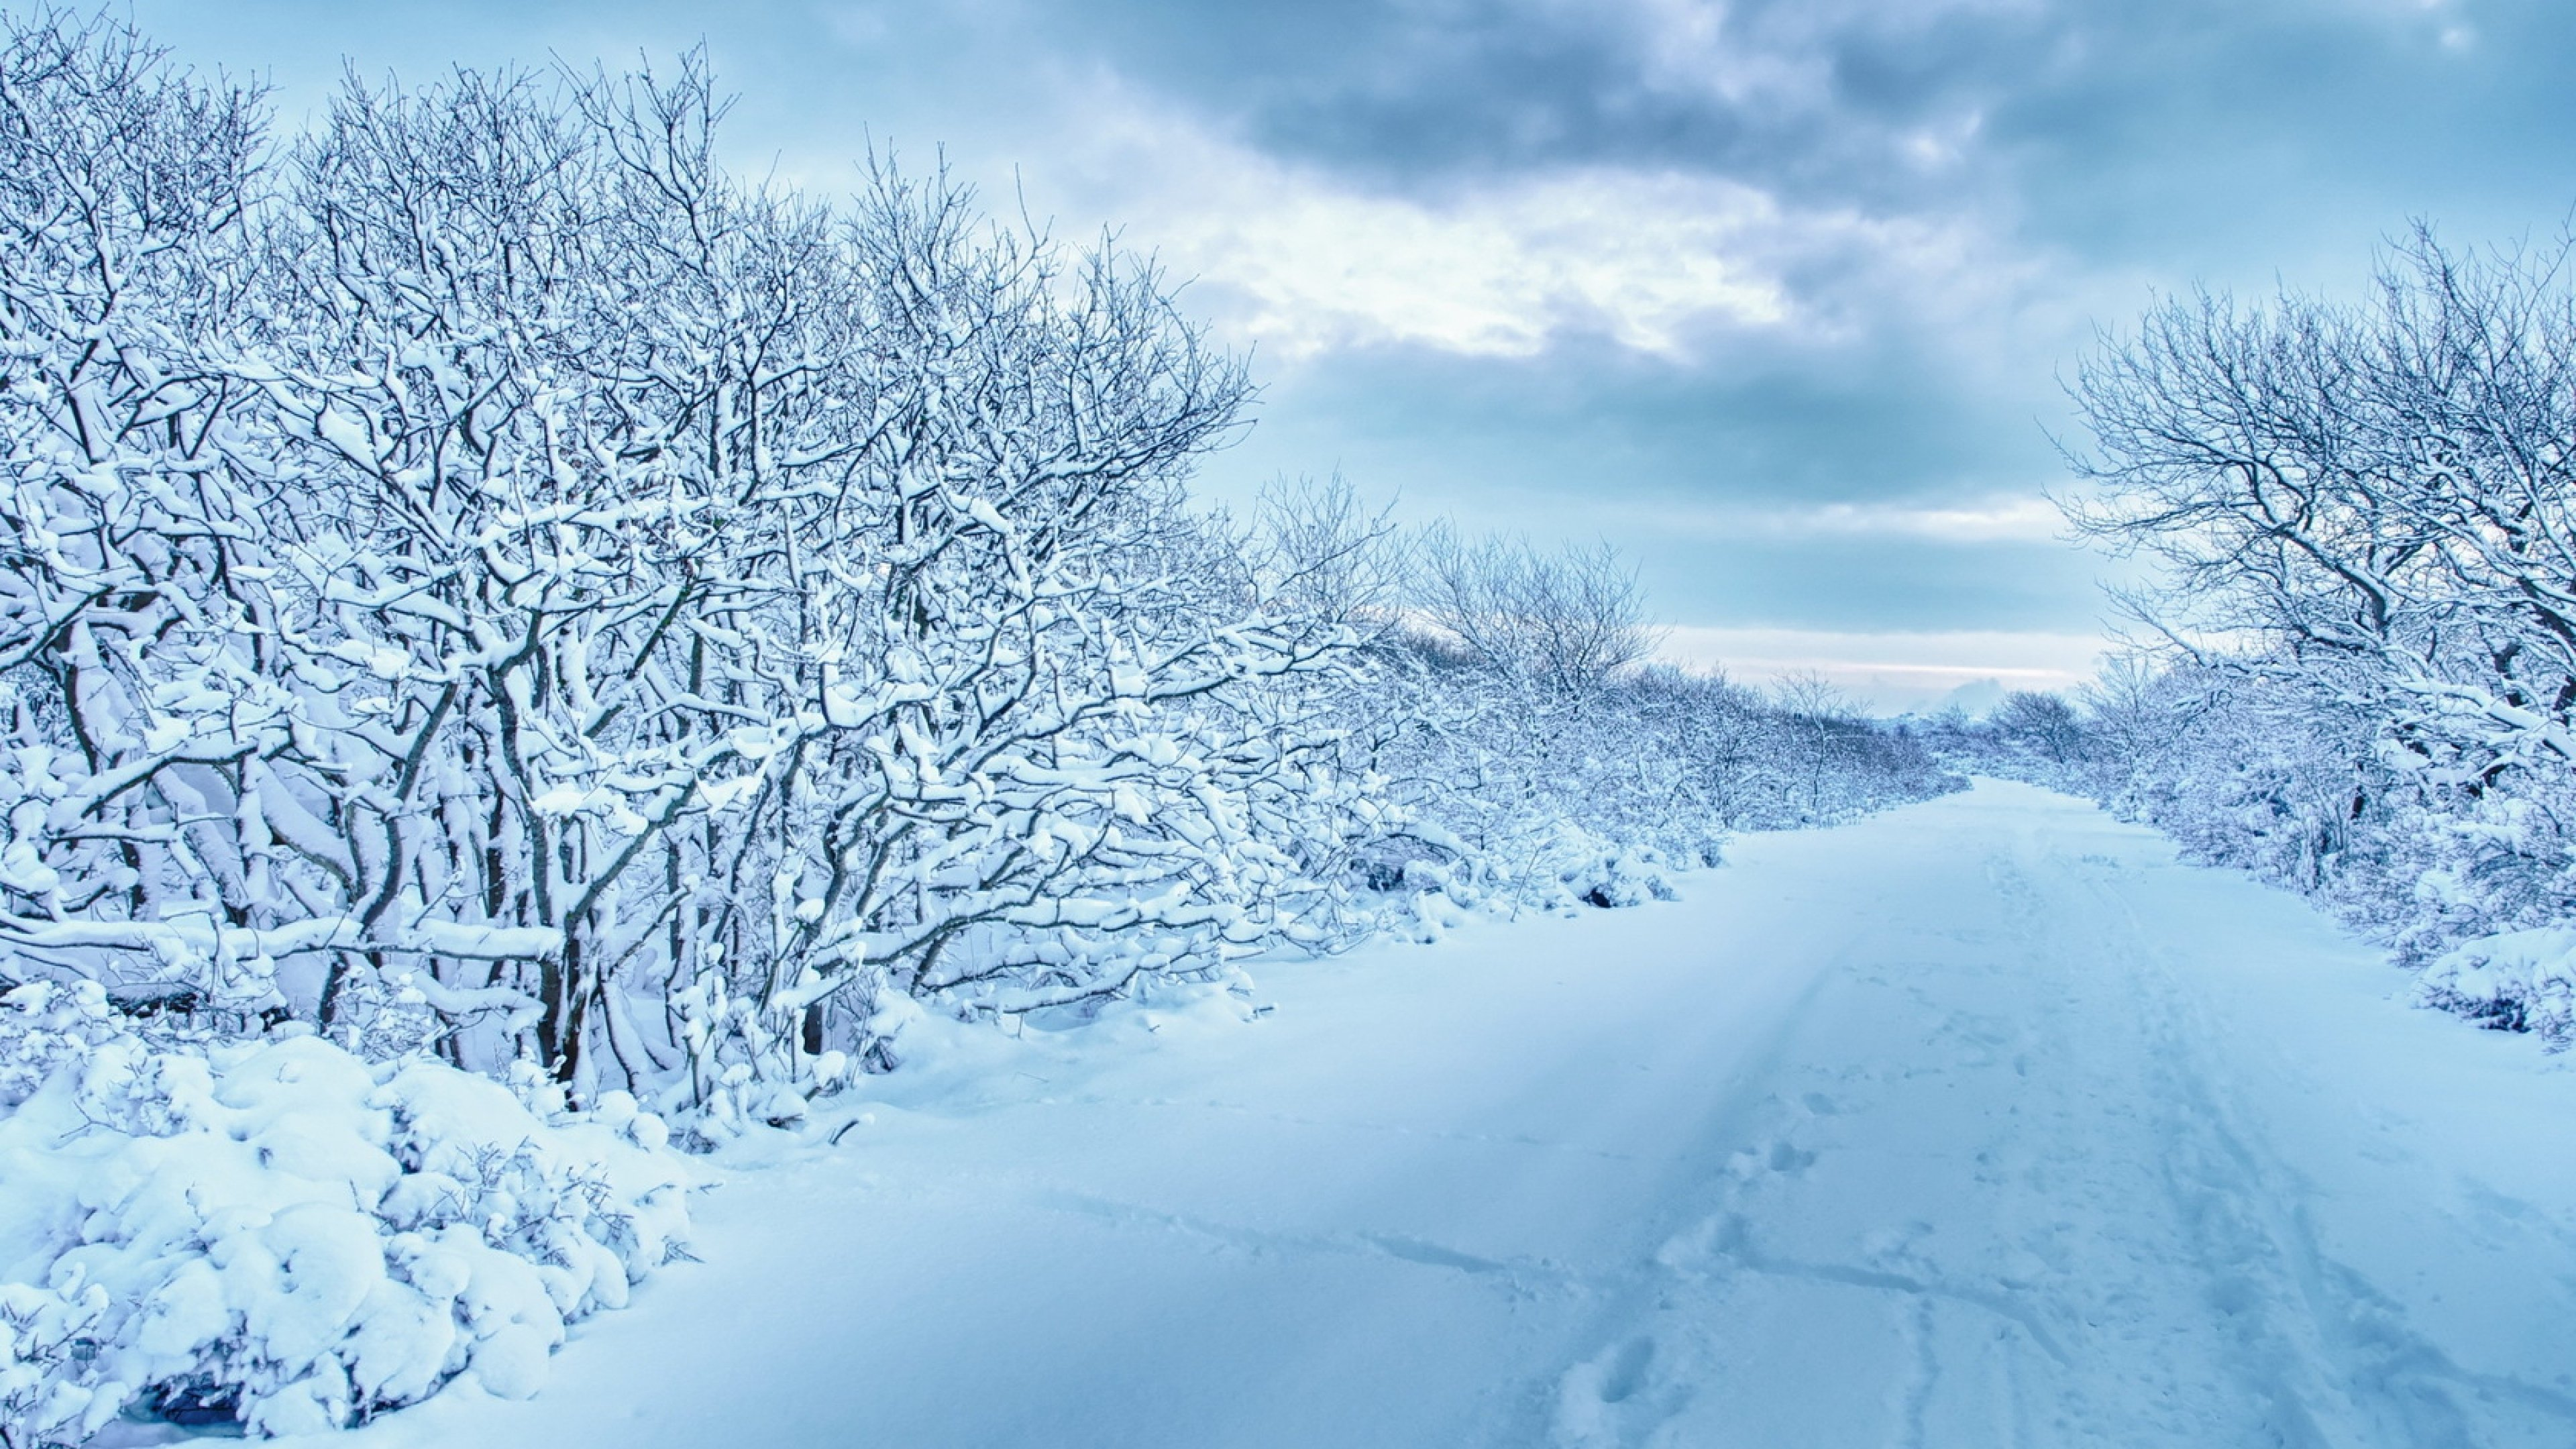 Wallpaper 3840x2160 snow trees road traces winter cloudy 4K 3840x2160